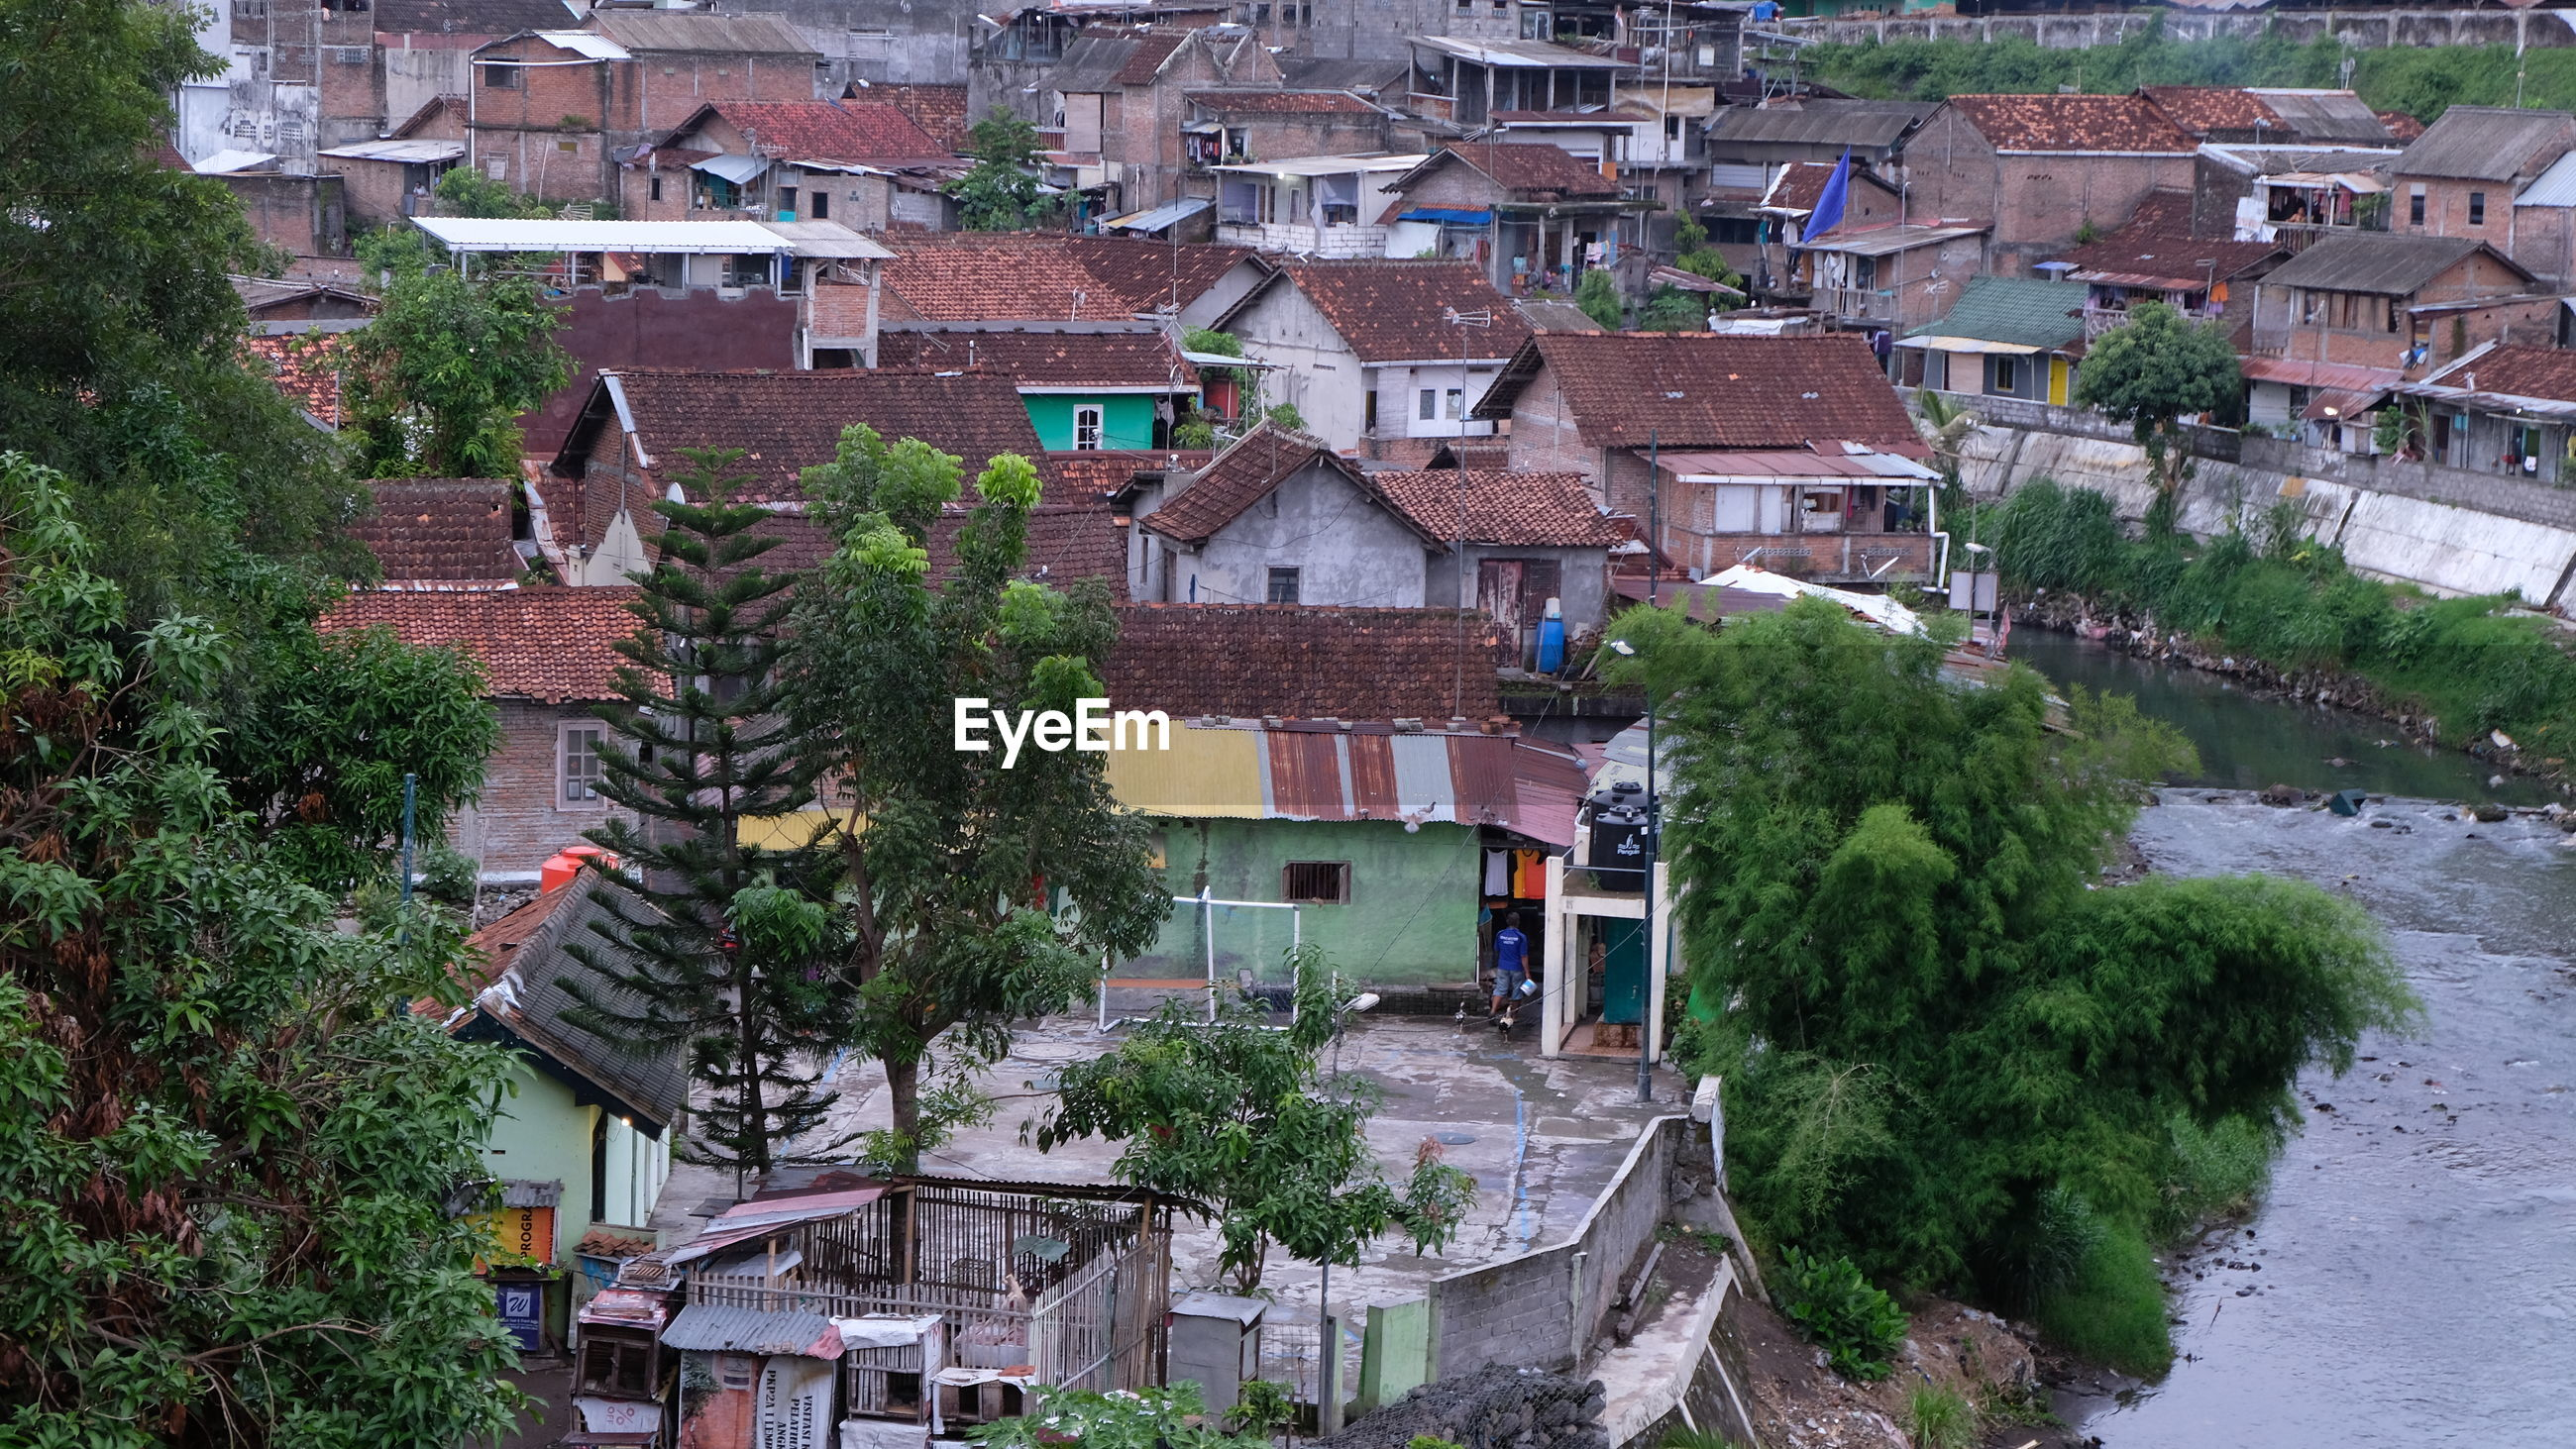 HIGH ANGLE VIEW OF BUILDINGS IN VILLAGE